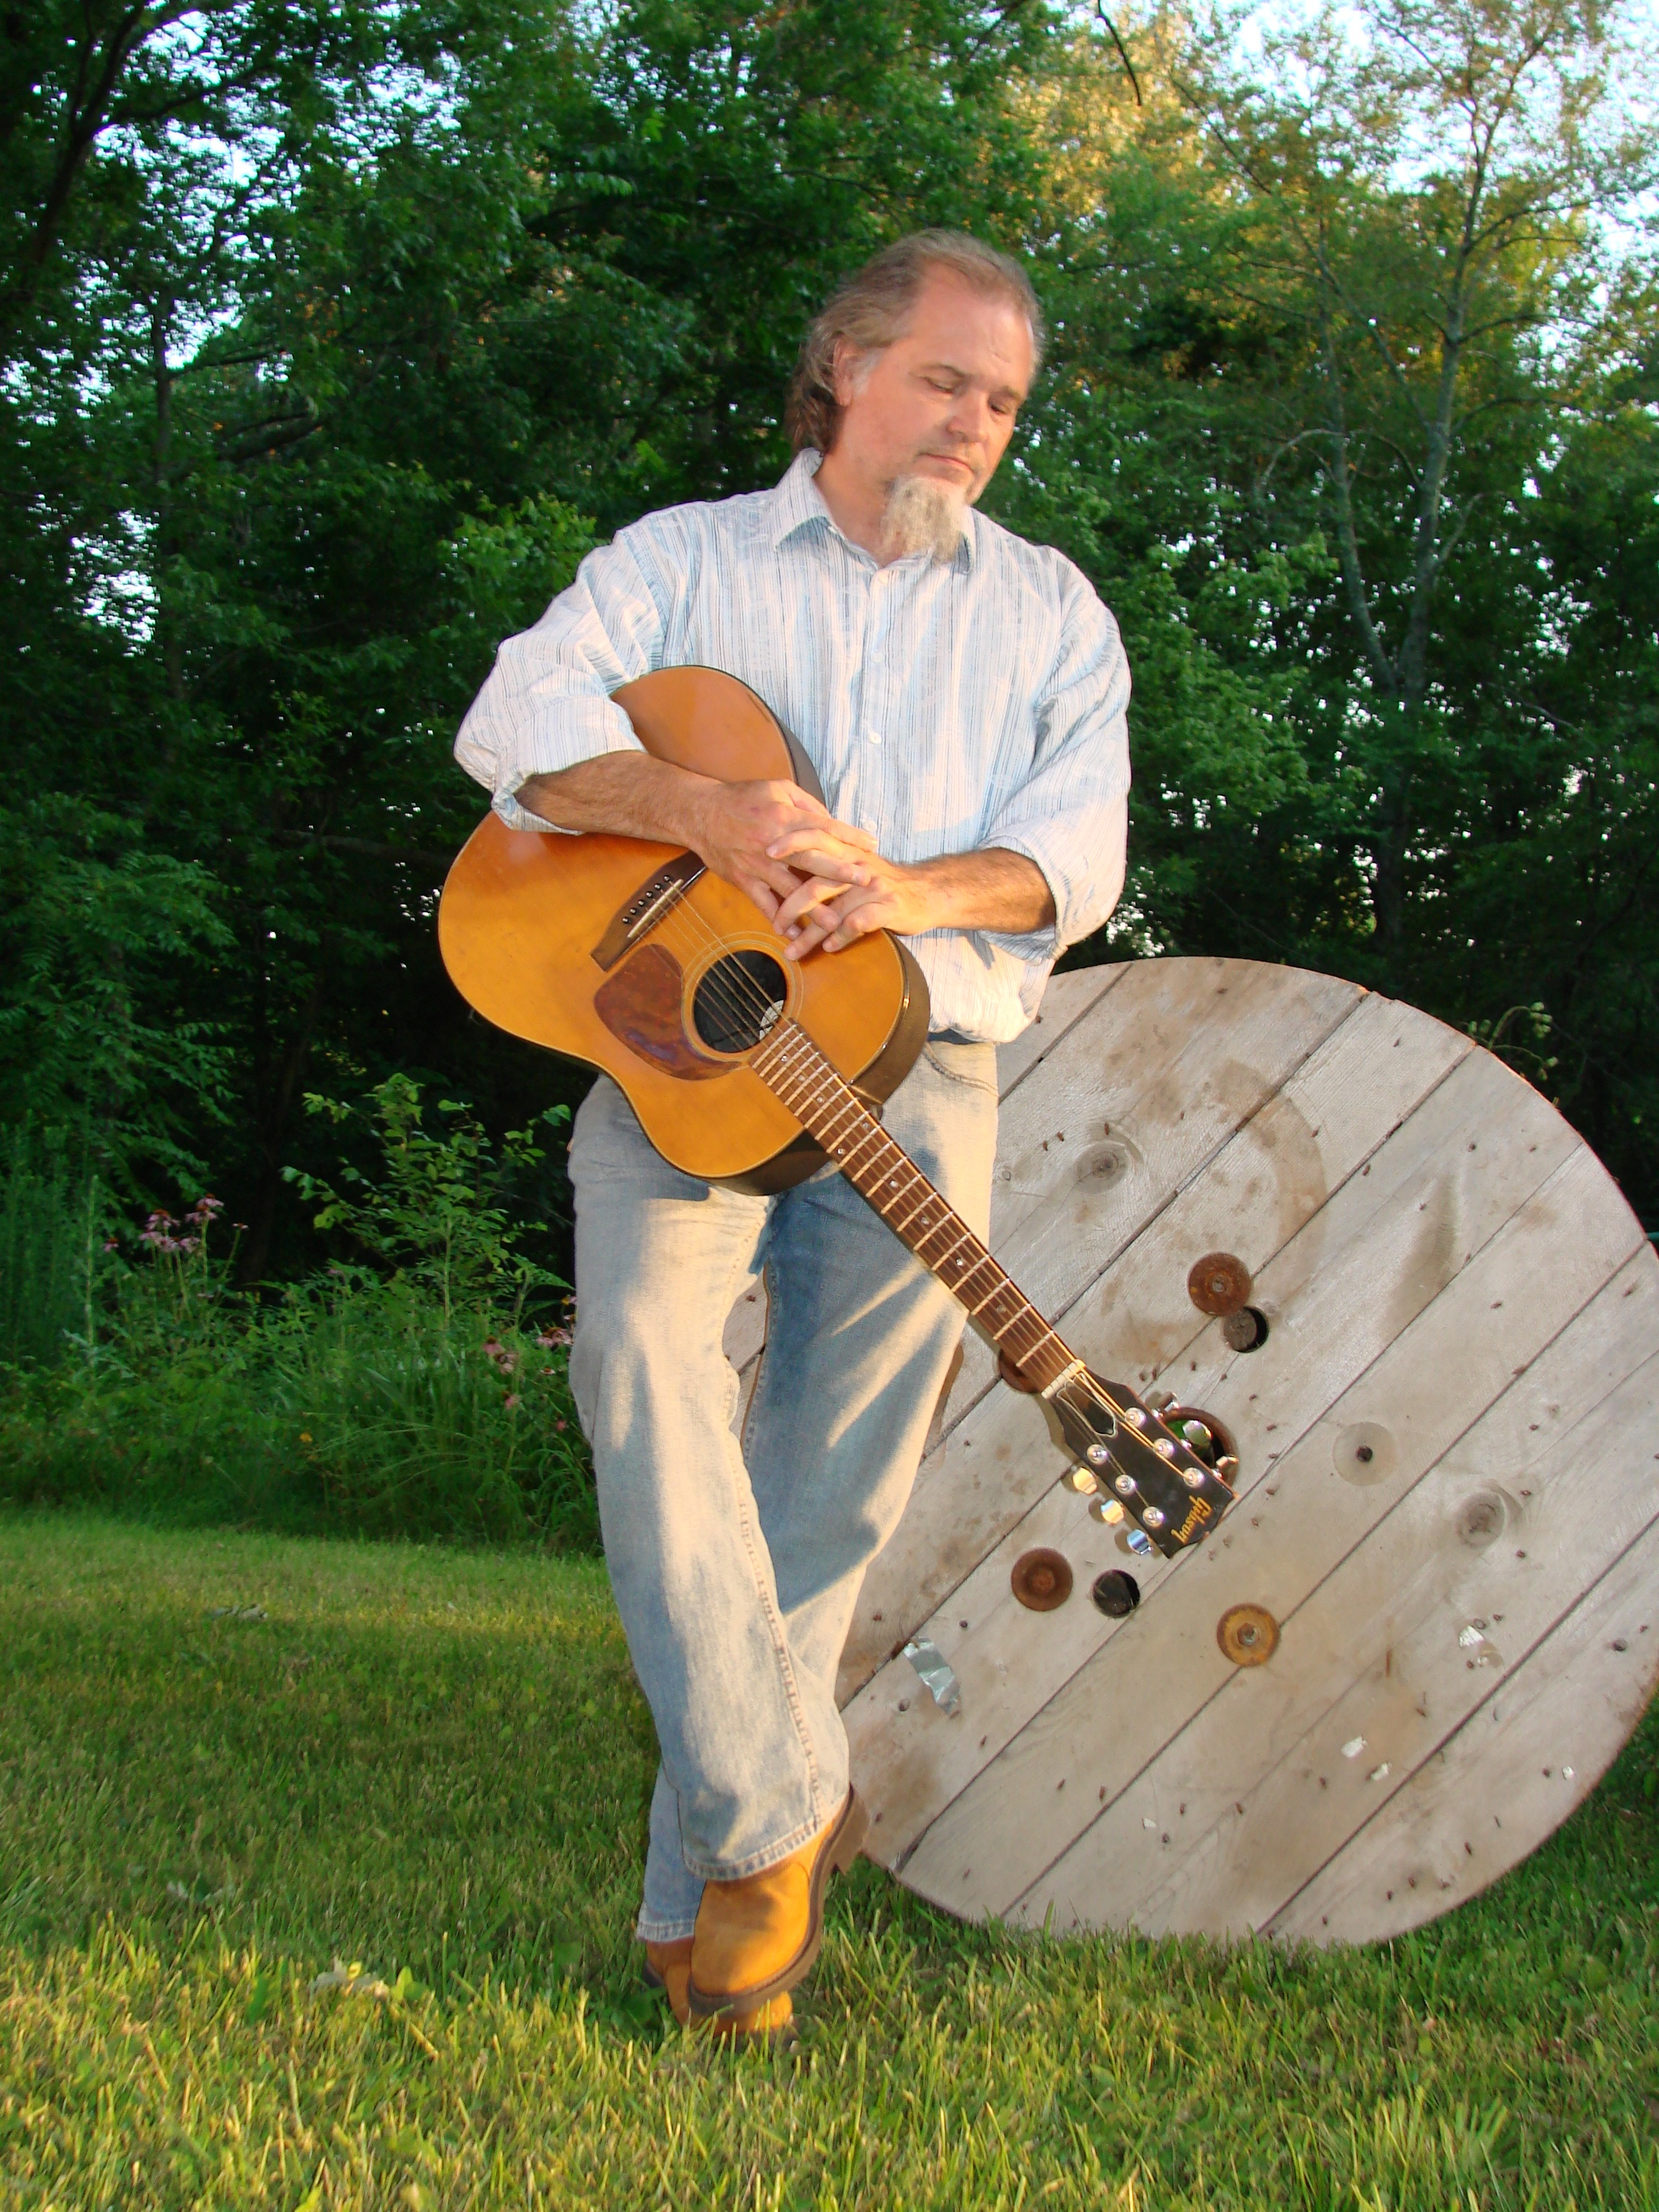 Tim Crosby, songwriter & performer